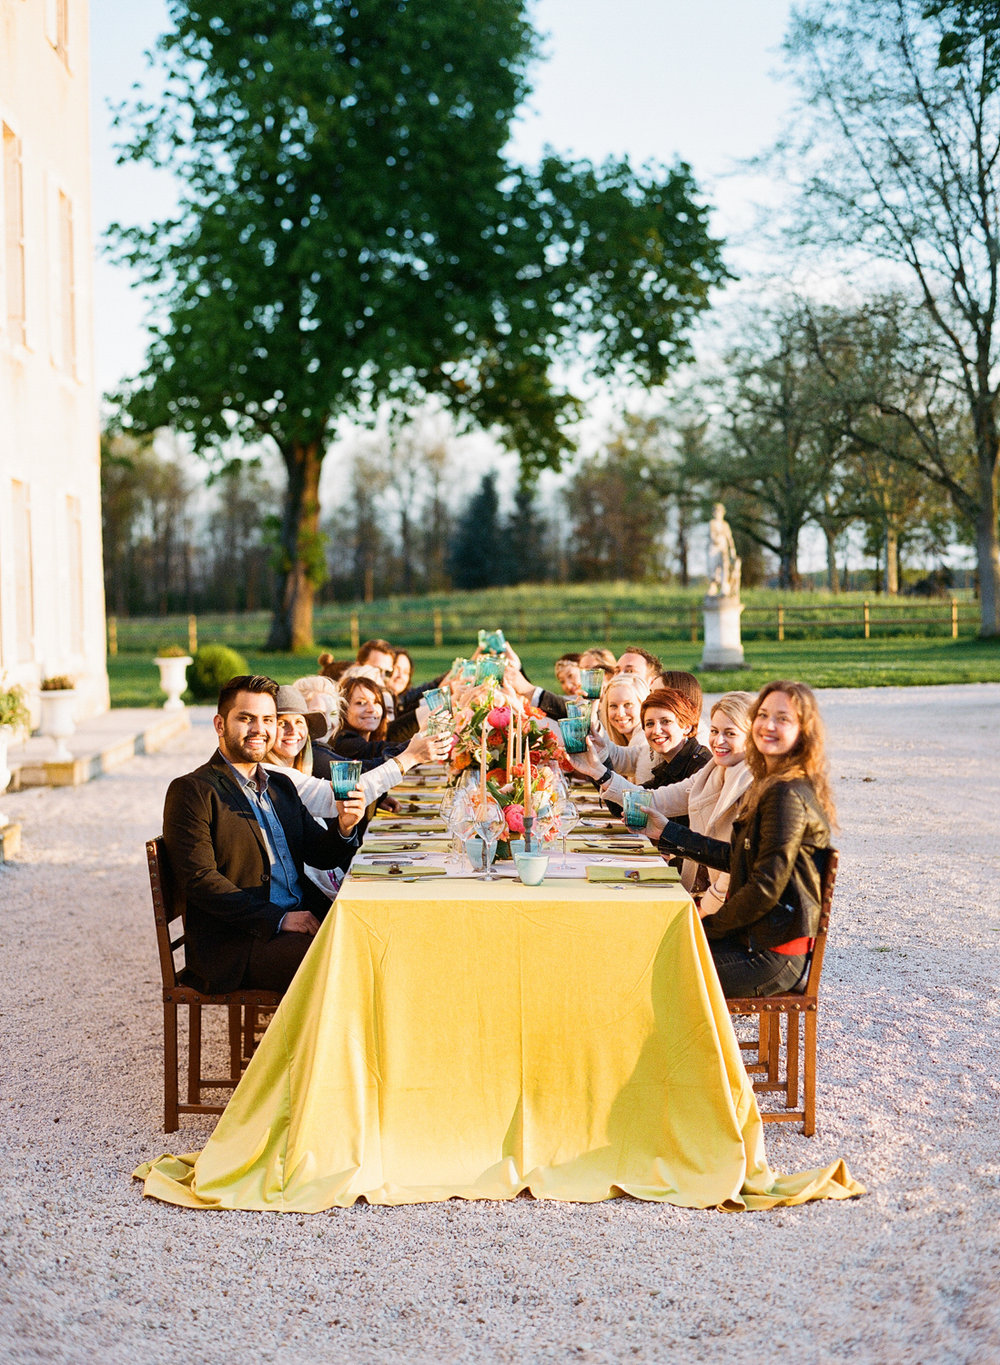 Sylvie Gil Workshop 2016 attendees enjoying a sunset dinner at Chateau de Varennes; photo by Sylvie Gil